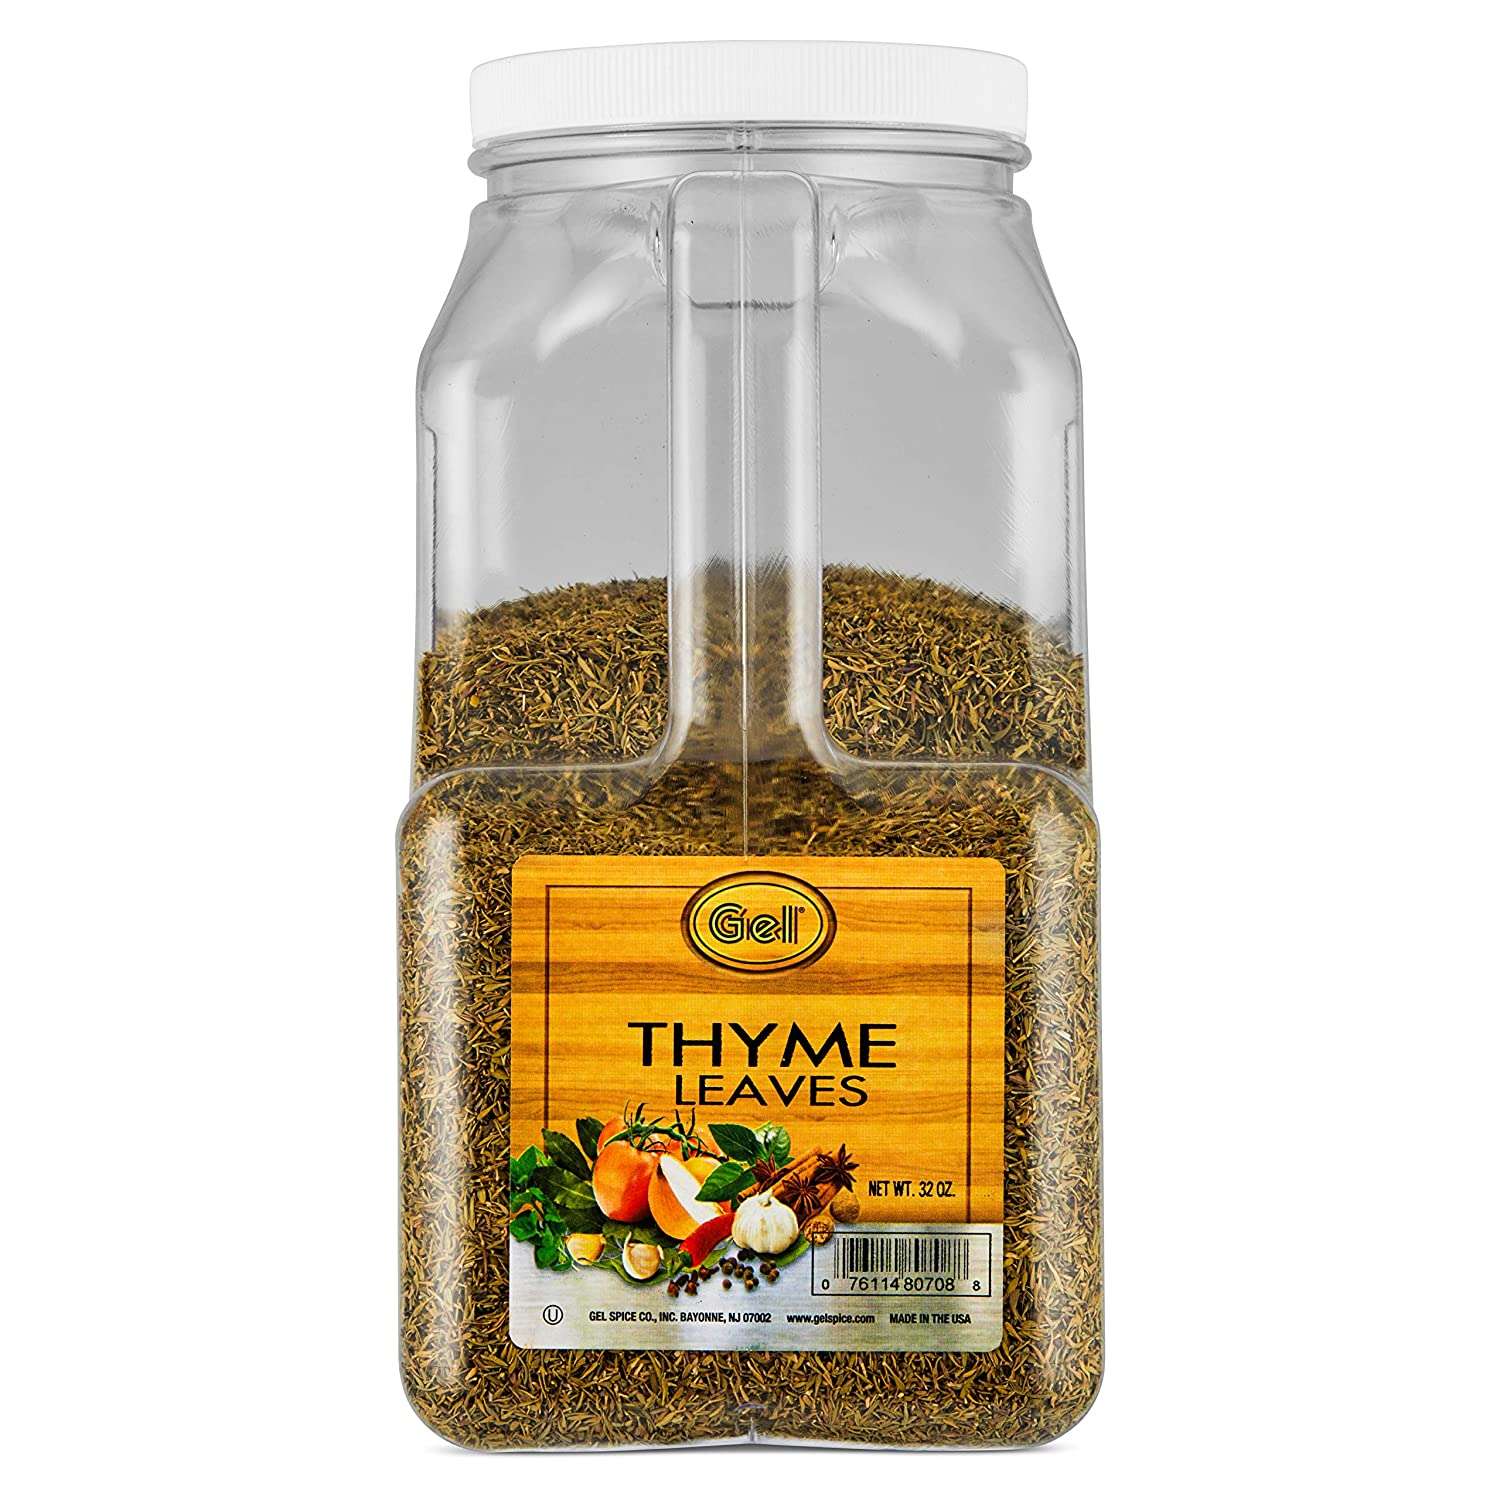 Gel Spice Sales Thyme Leaves 32 Food - OZ Service Size Max 42% OFF